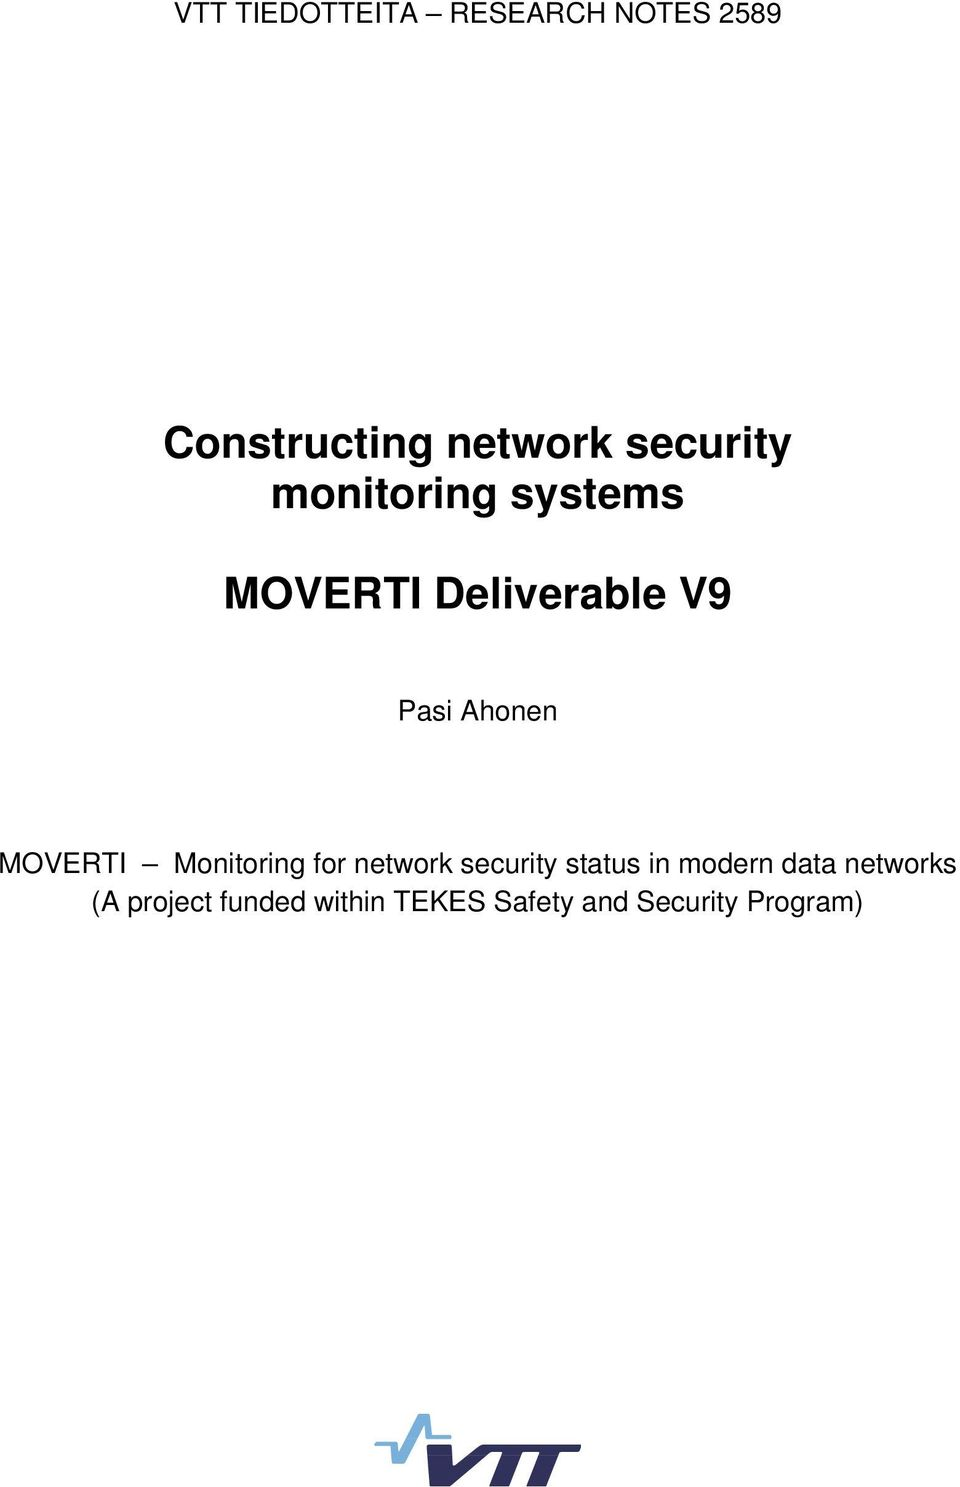 MOVERTI Monitoring for network security status in modern data